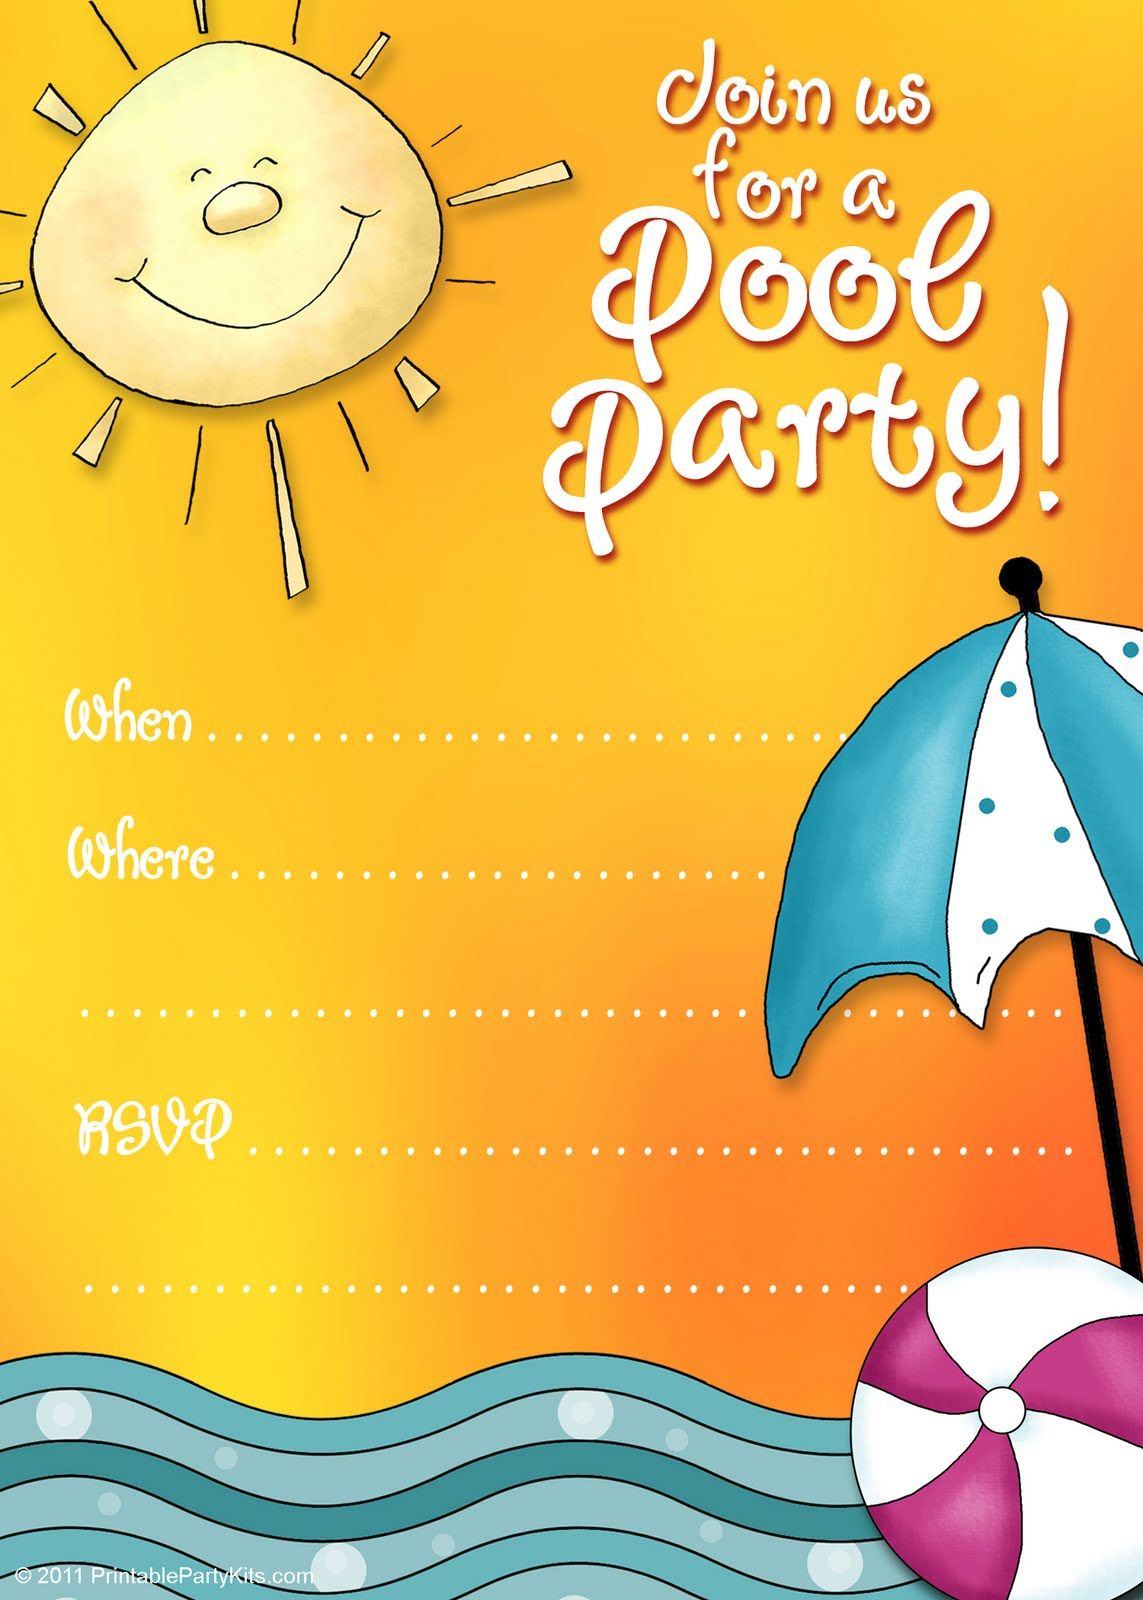 Free Printable Party Invitations: Summer Pool Party Invites | ADHD ...